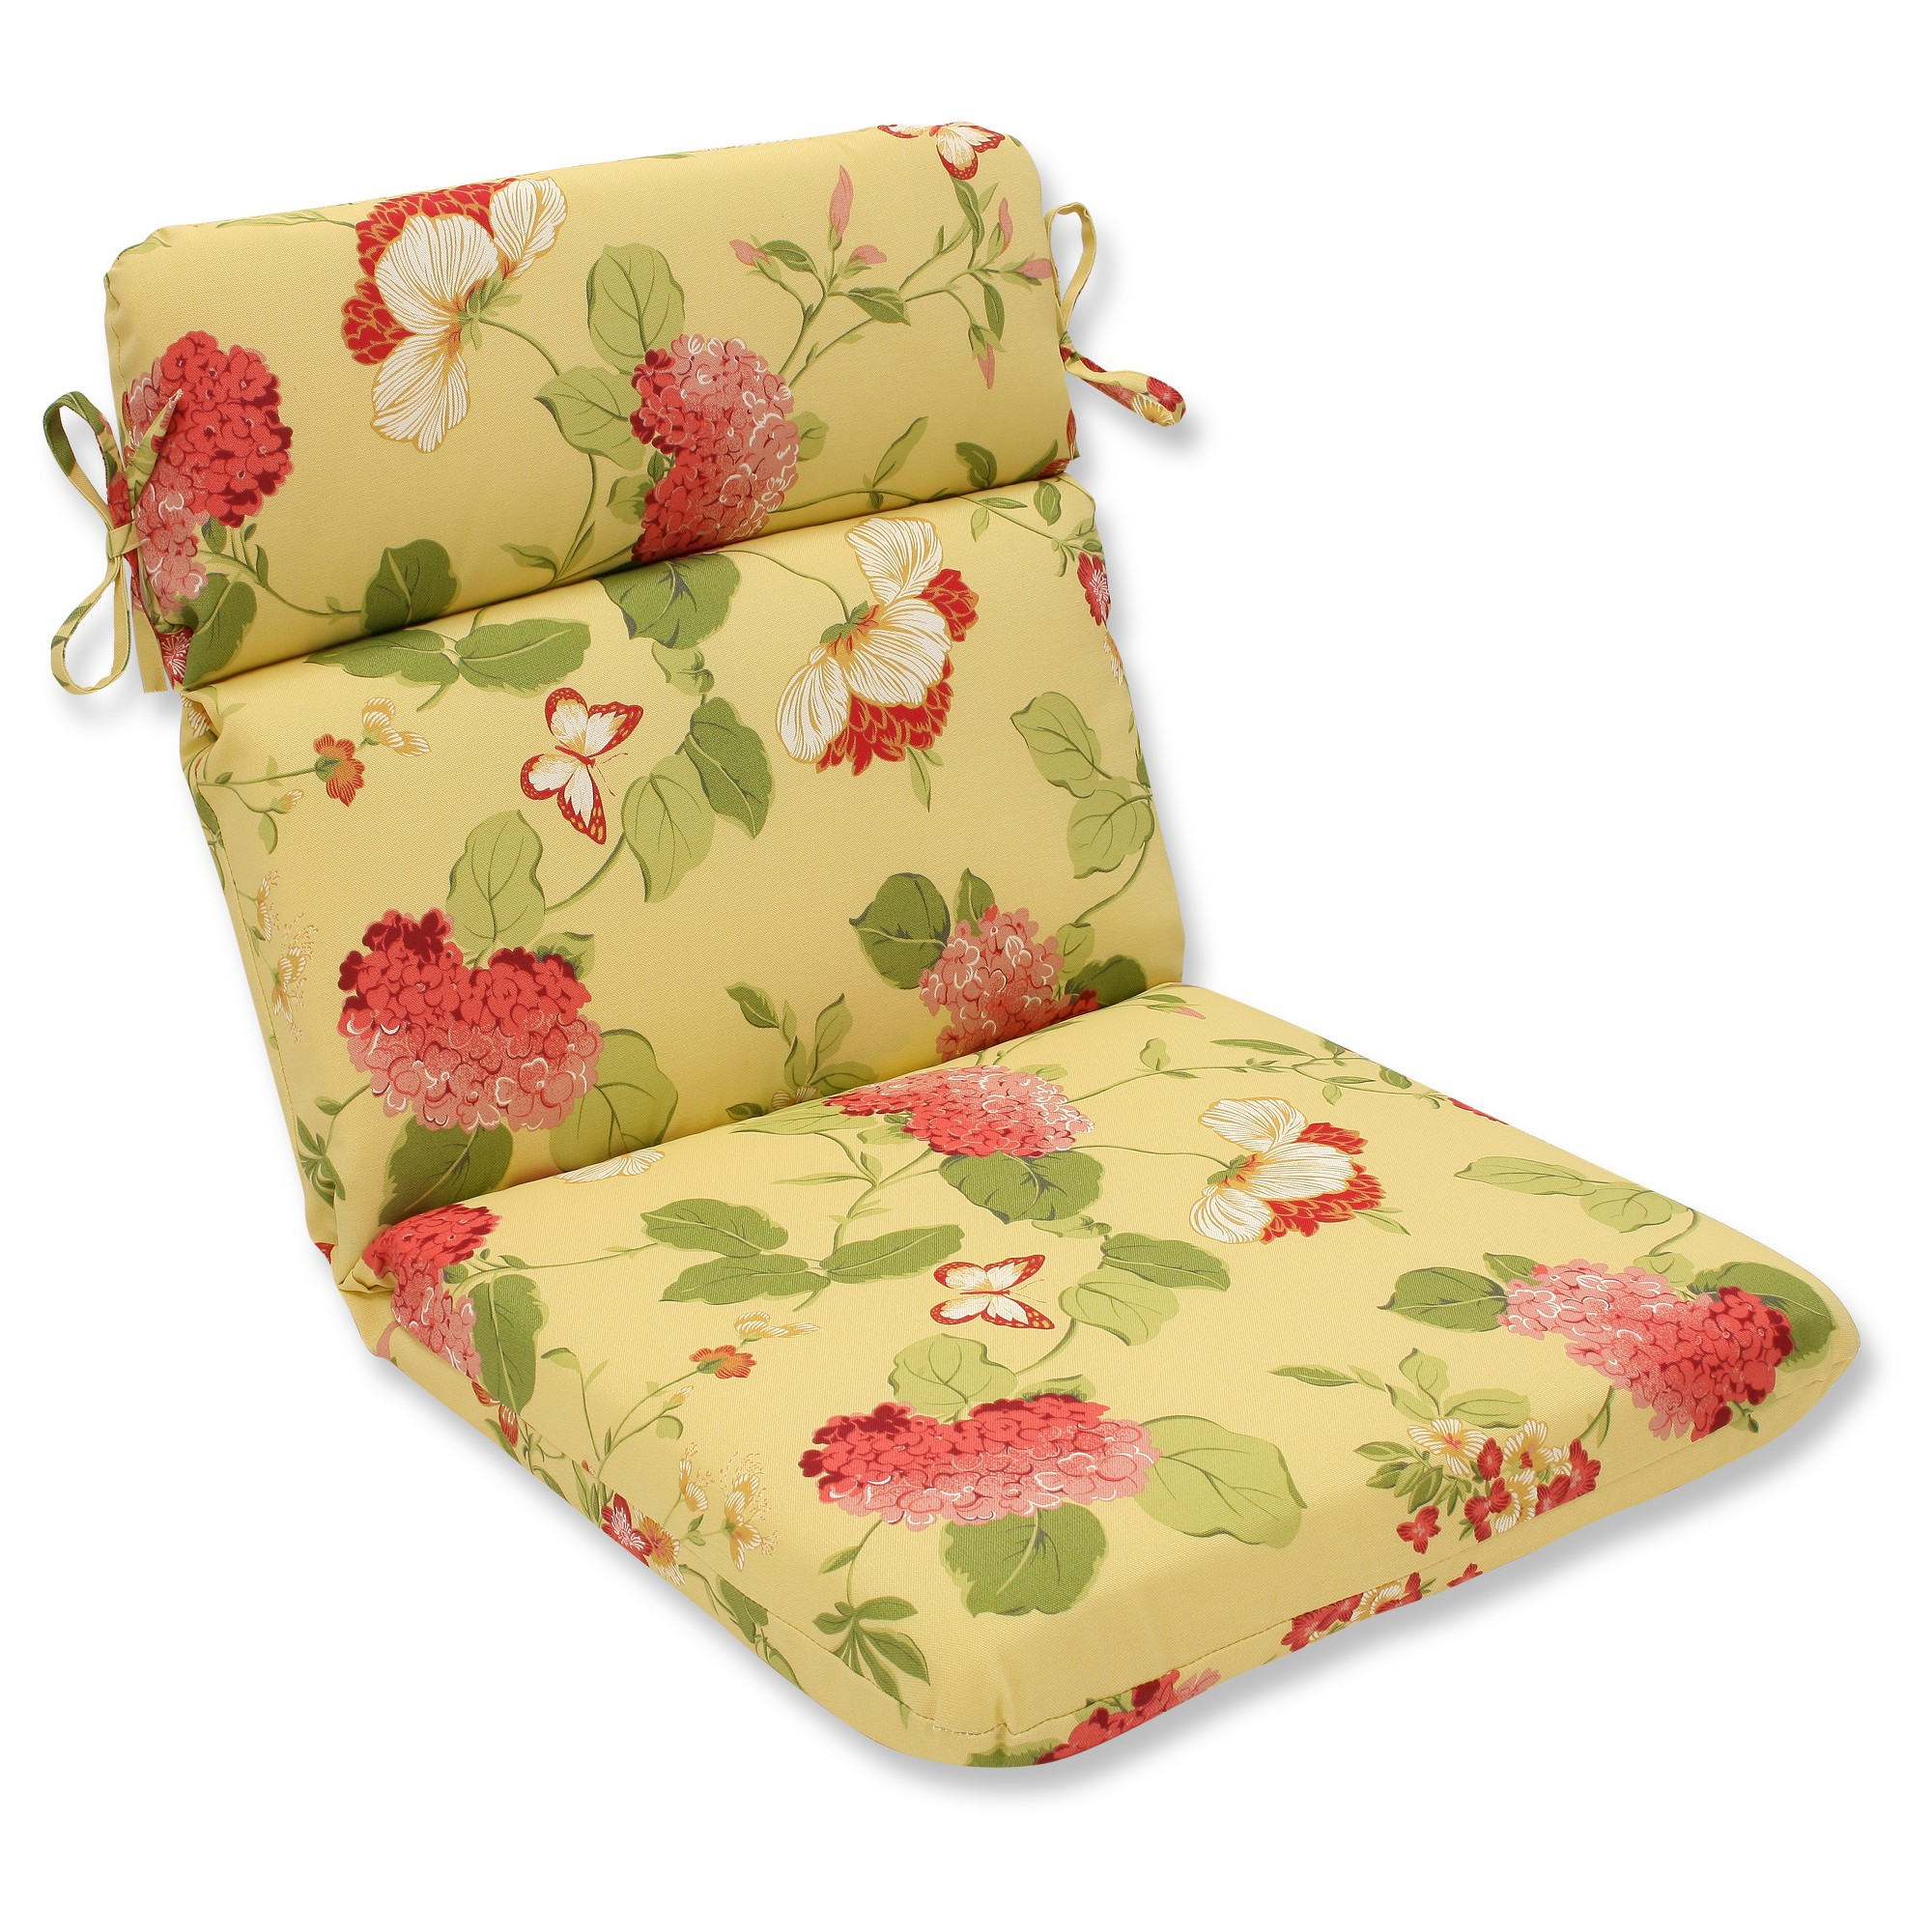 Outdoor Rounded Chair Cushion - Yellow/Red Floral